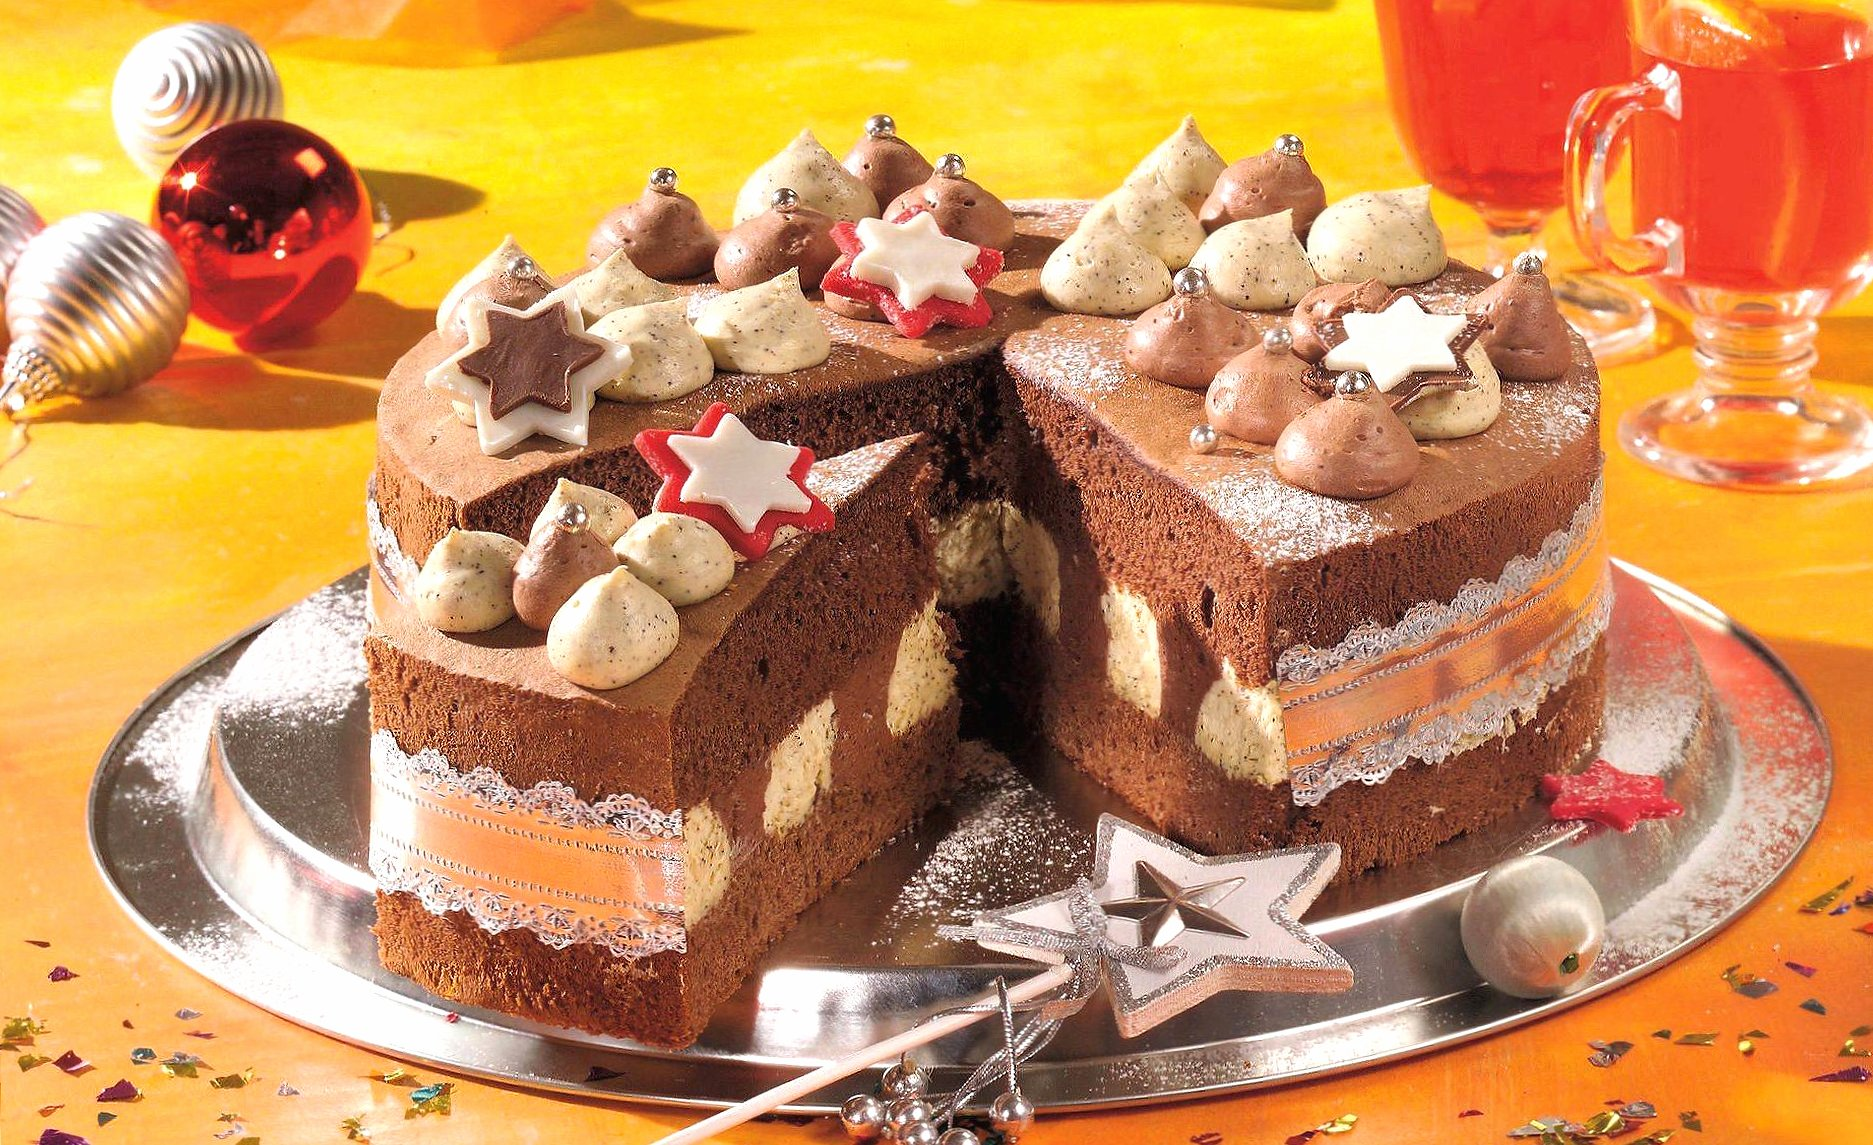 Soft cake with chocolate wallpapers HD quality